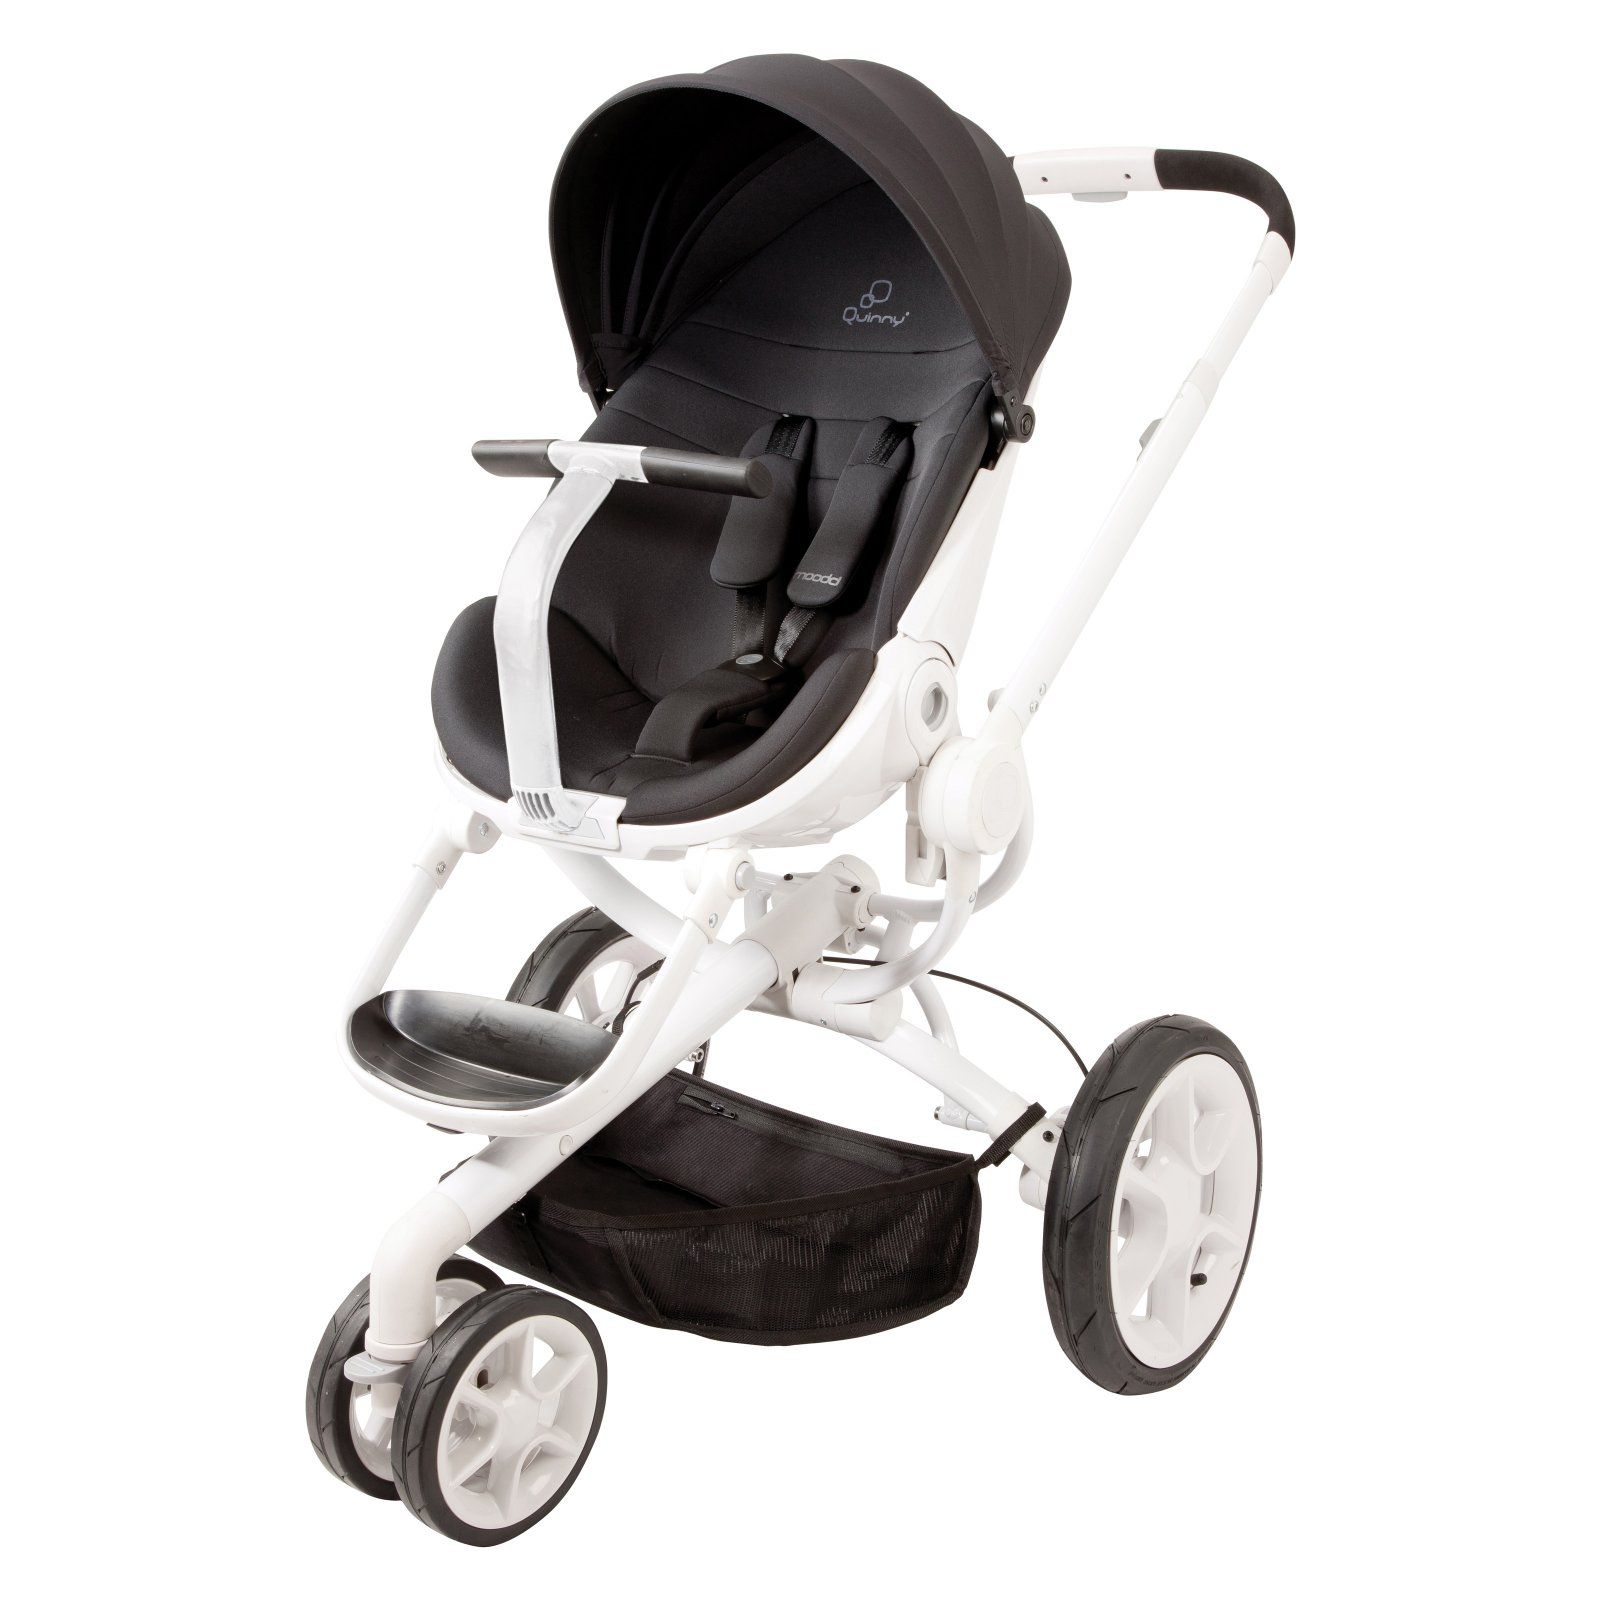 49+ Quinny moodd stroller how to fold ideas